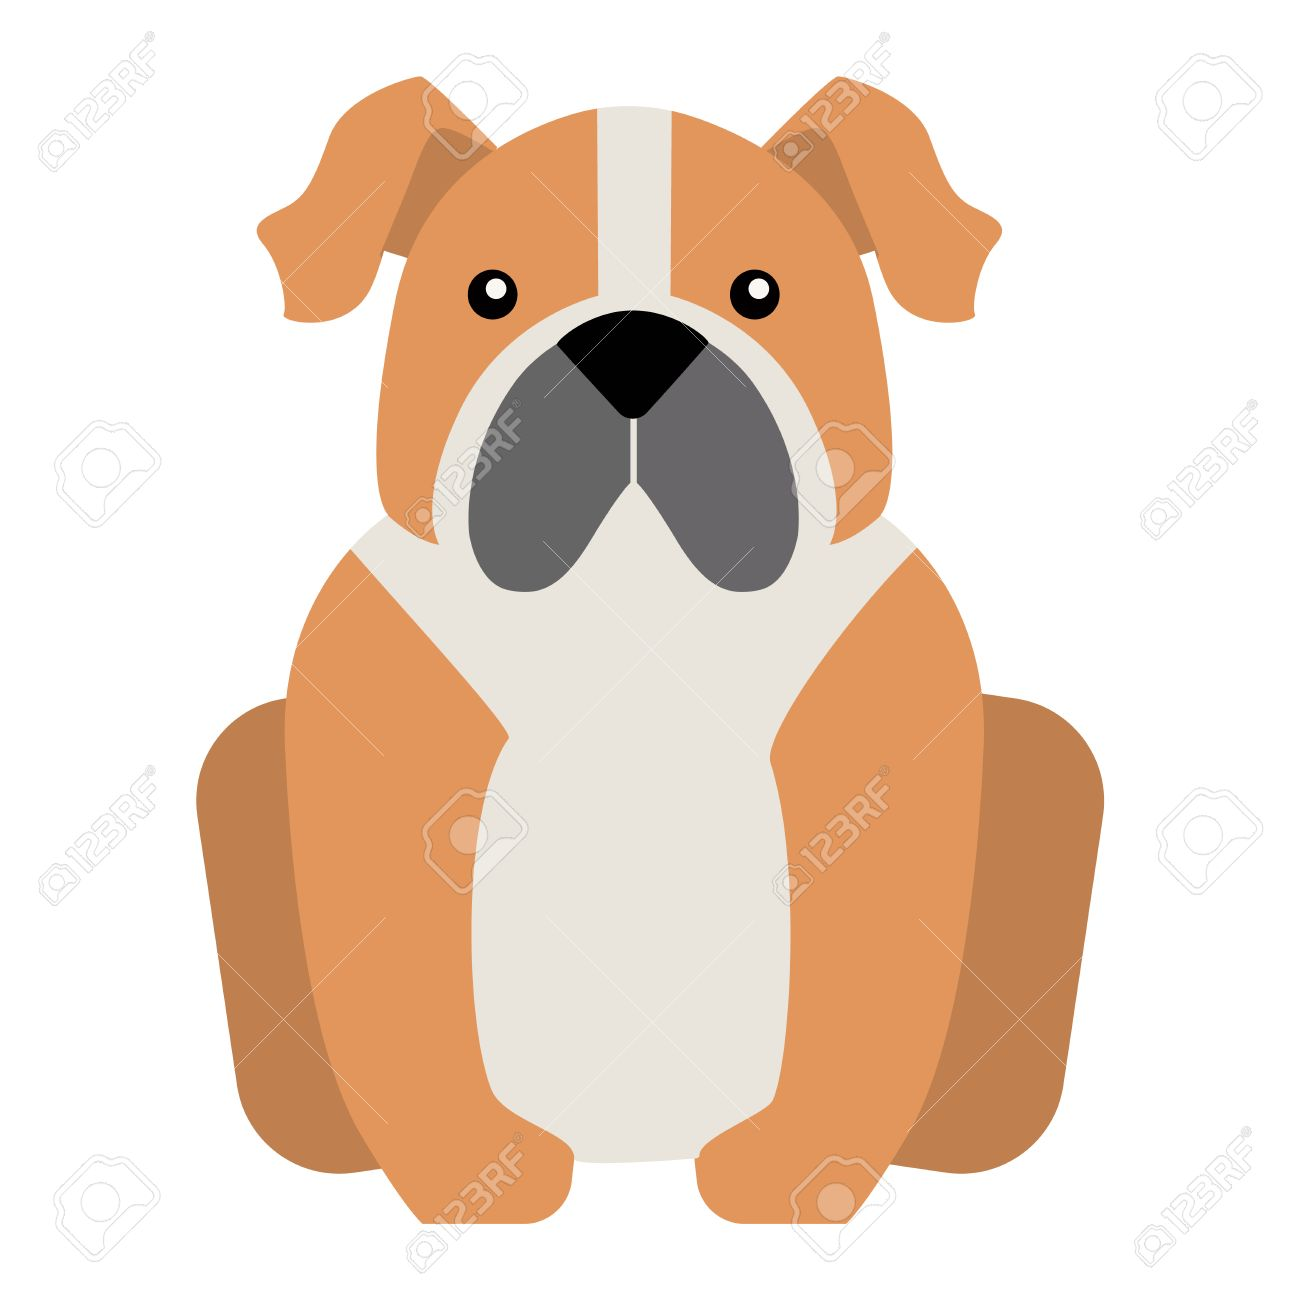 Flat Dog Pet Sitting Cute Dog Vector Flat Dog Animal Pet Vector